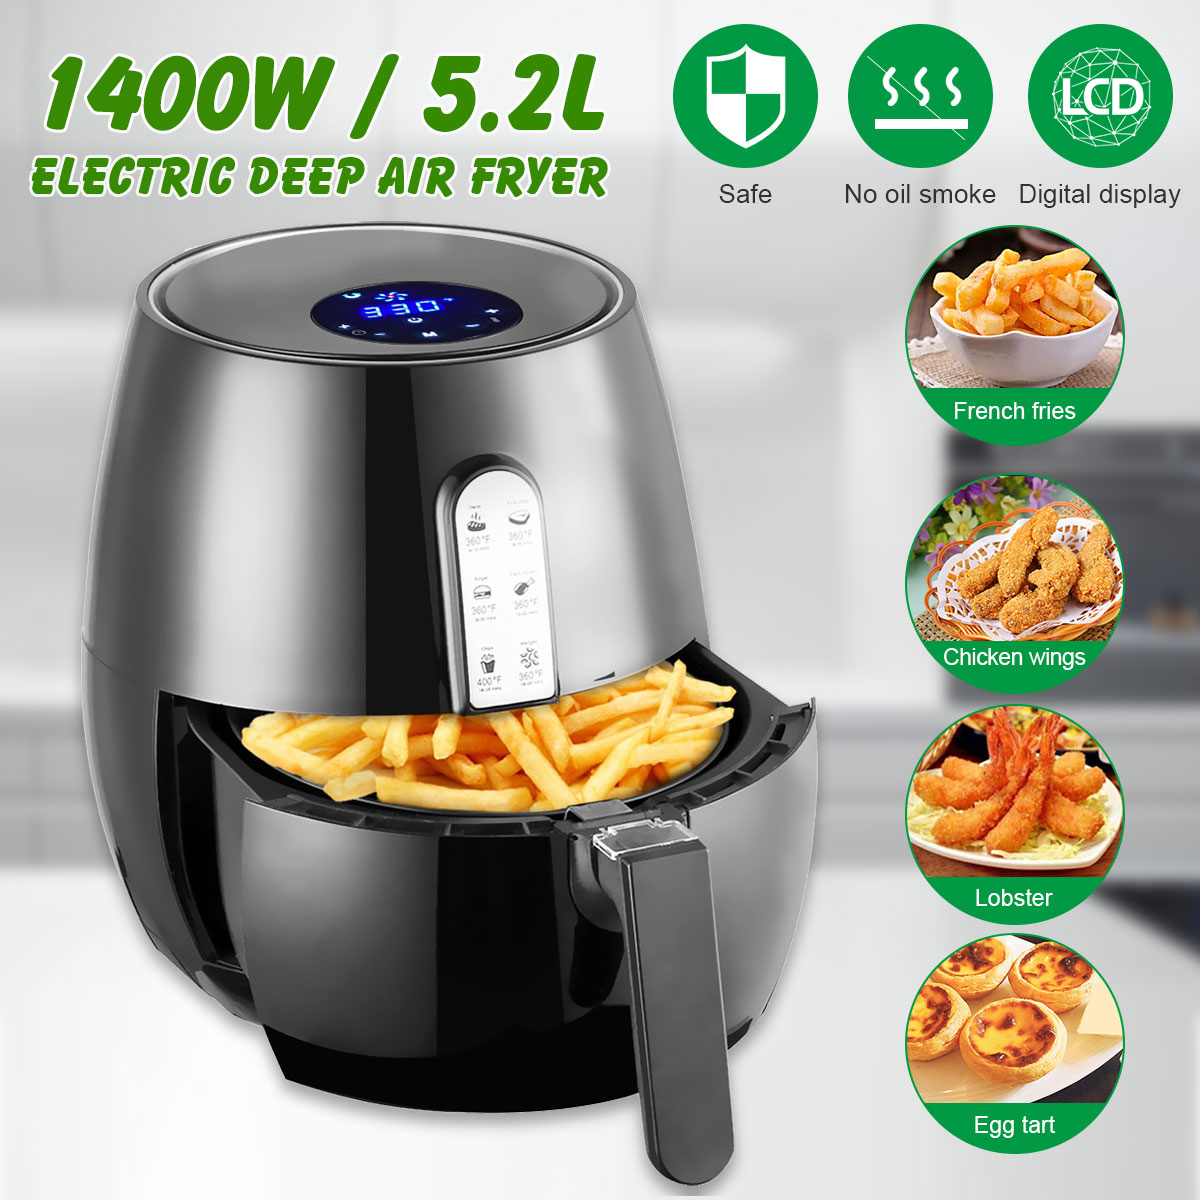 1400W 5.2L Power Air Fryer Digital LED Touch Screen Timer Temperature Control Electric Deep Fryer Air Fryer Kitchen Tools